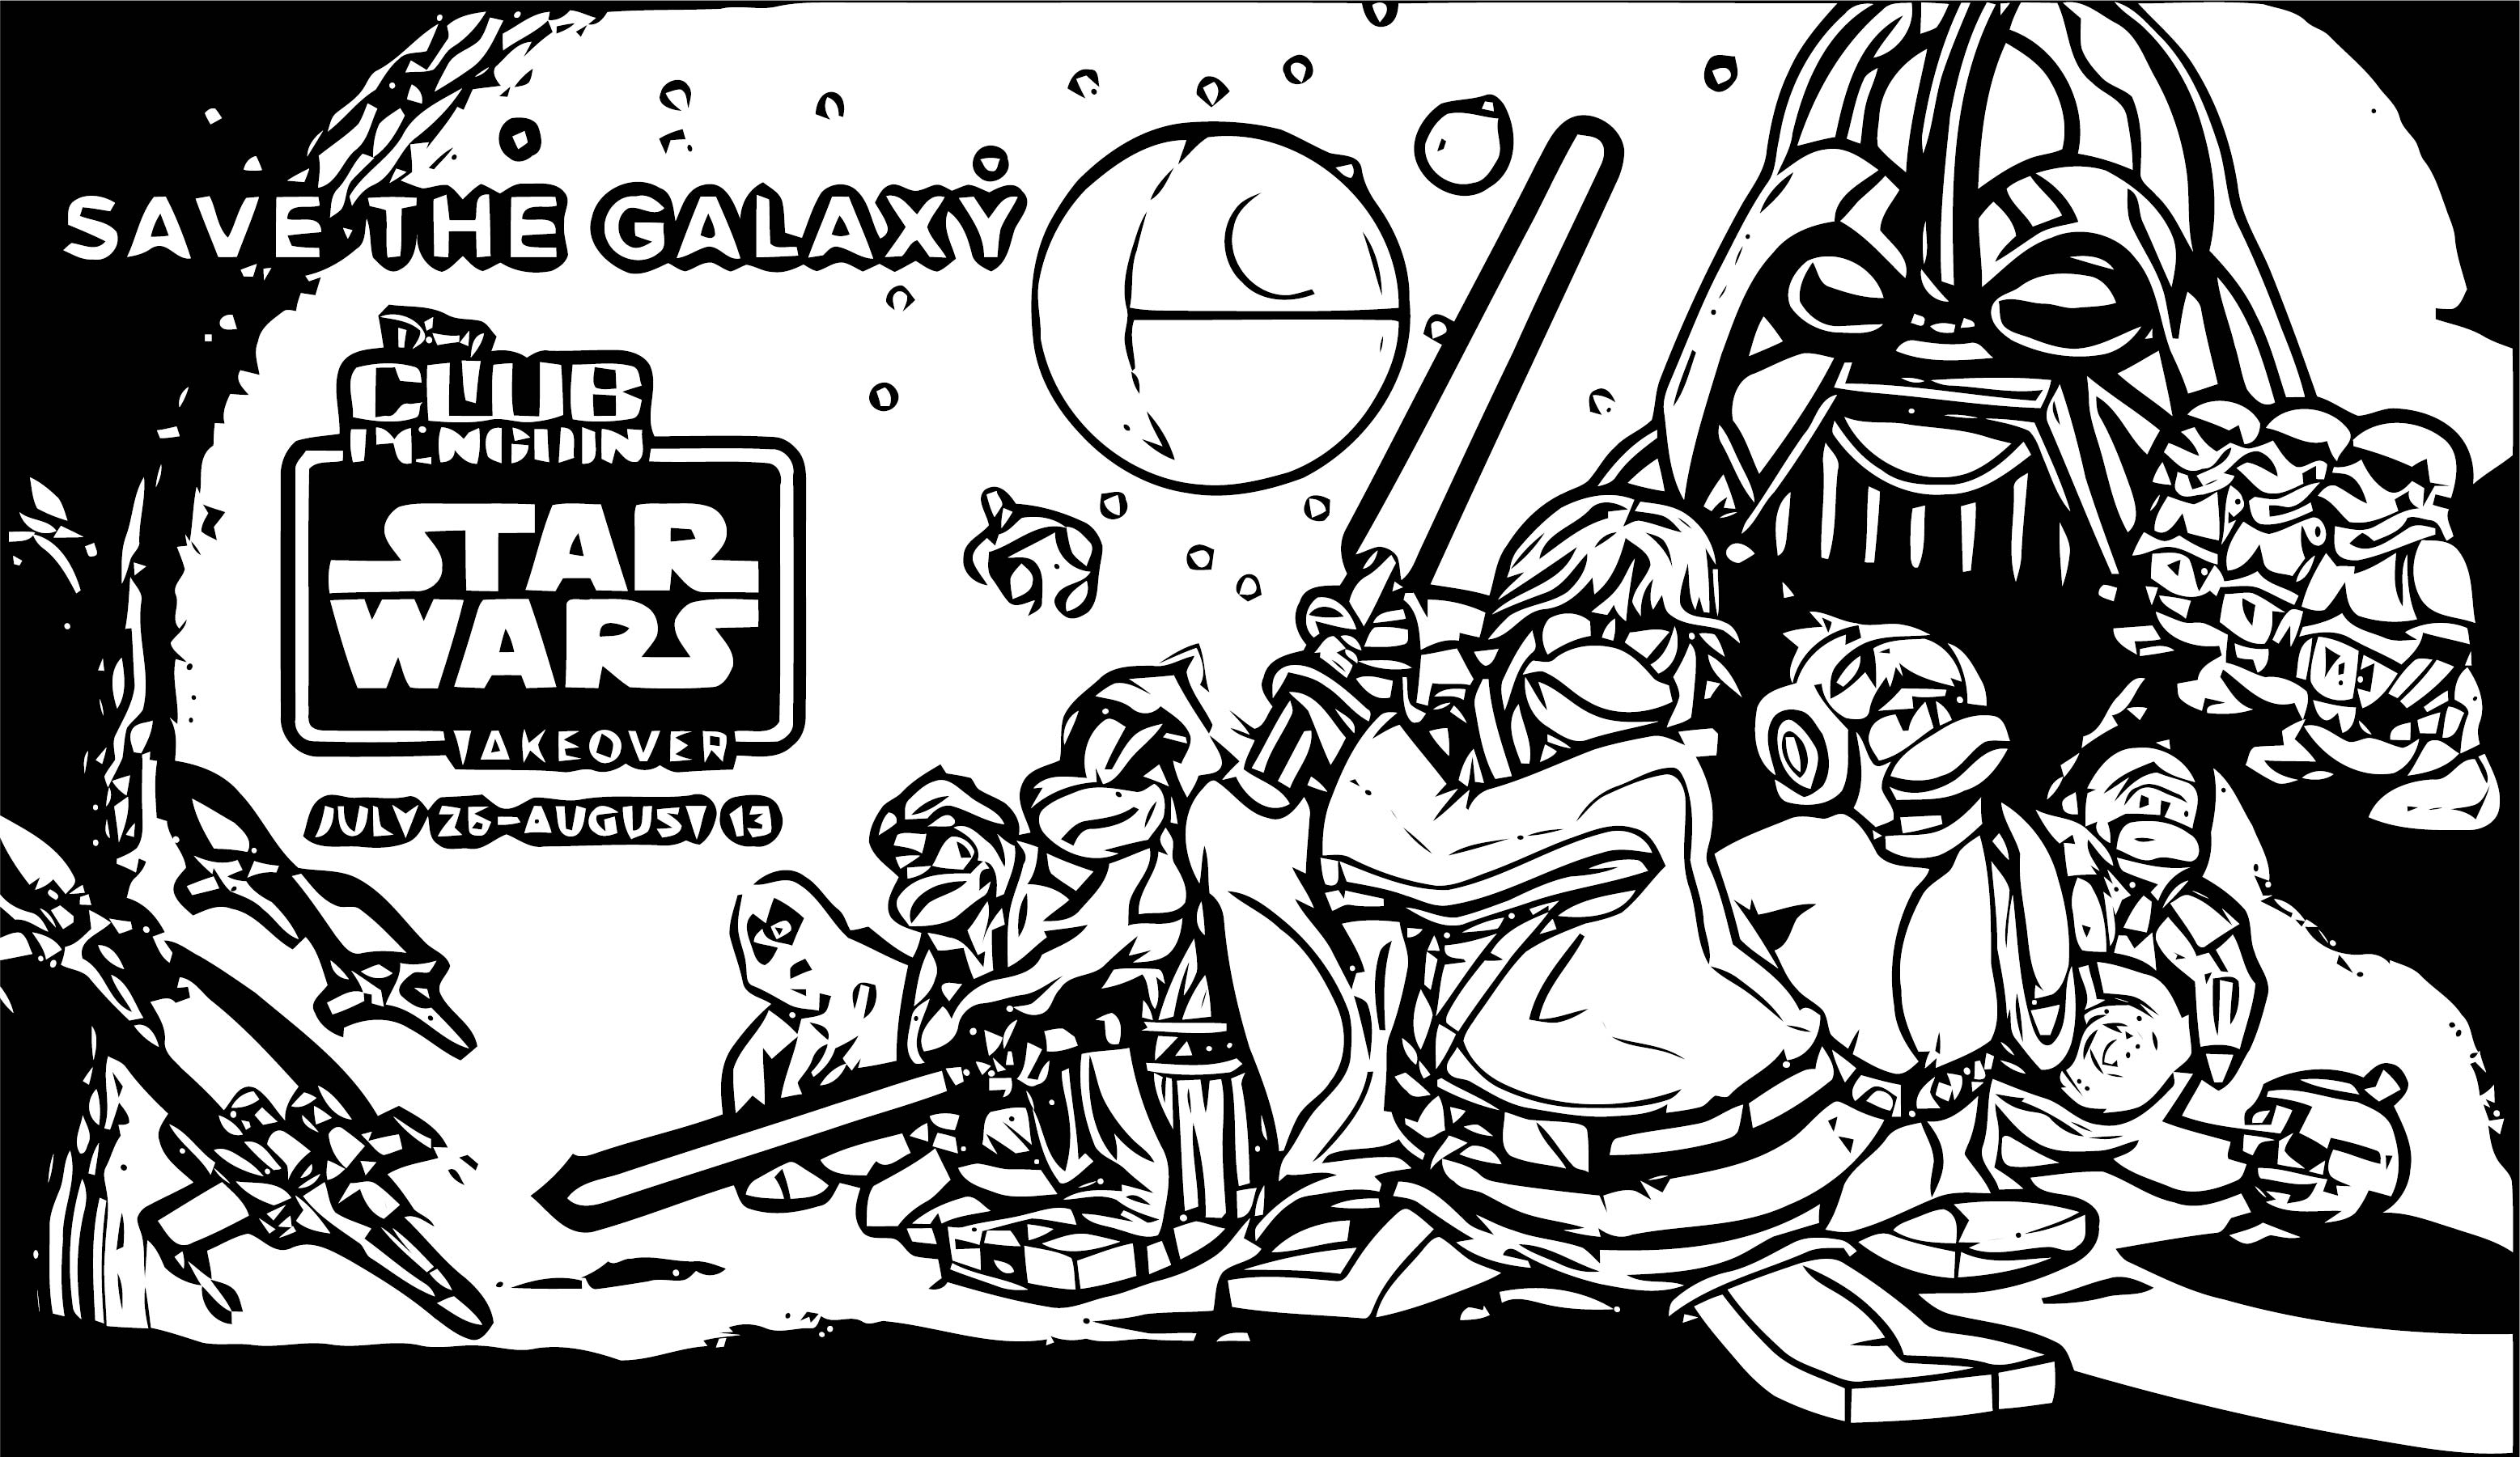 Star Wars Club Penguin Coloring Page